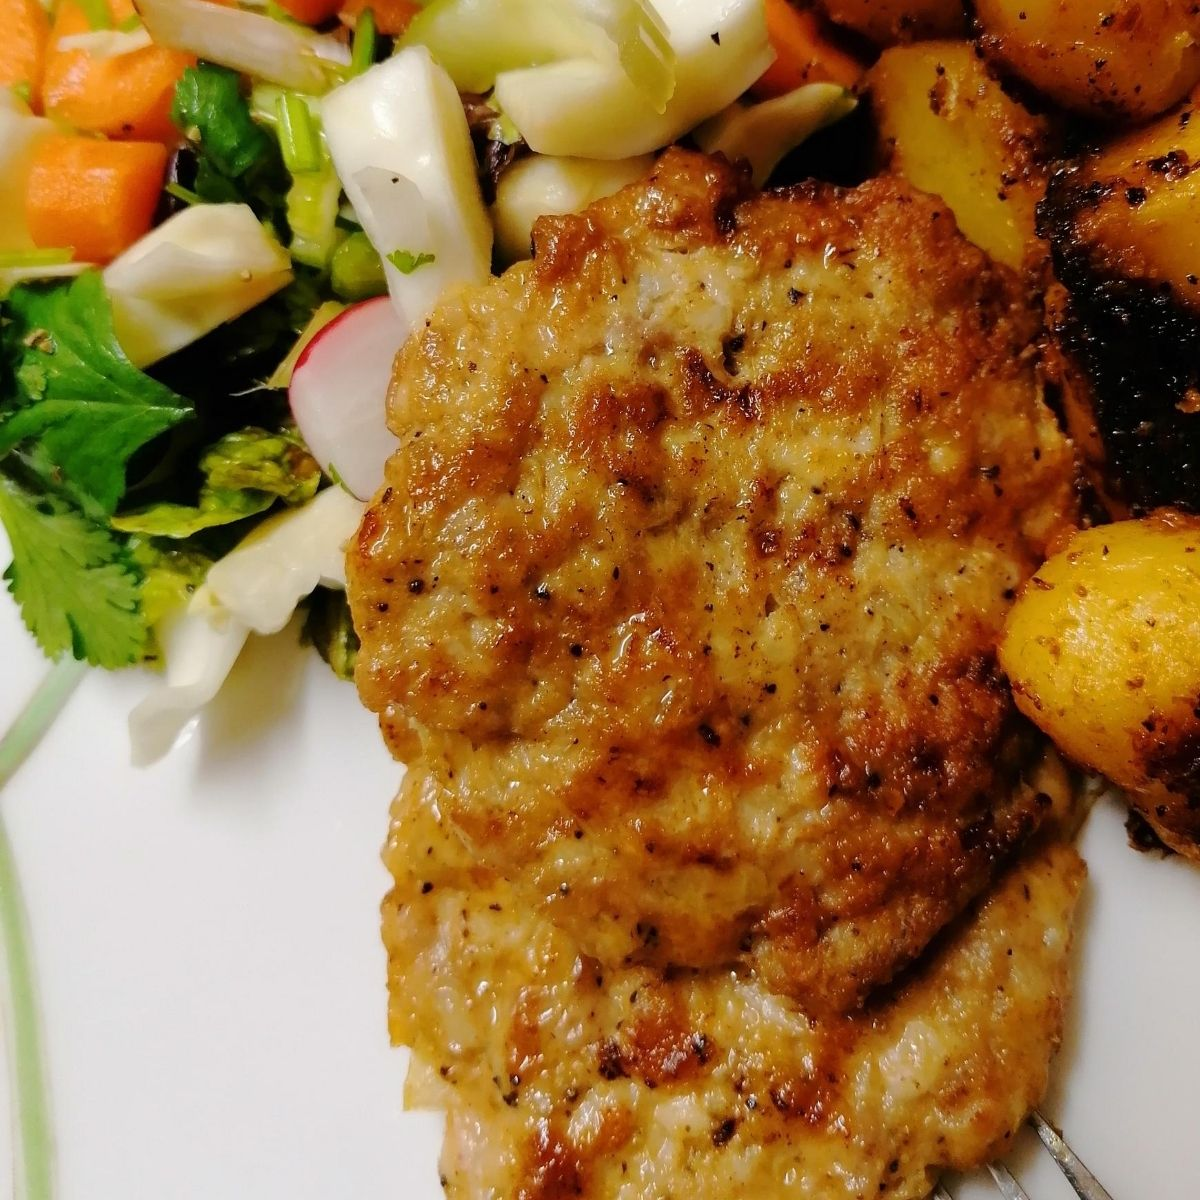 Chicken kebab patties with potatoes and salad